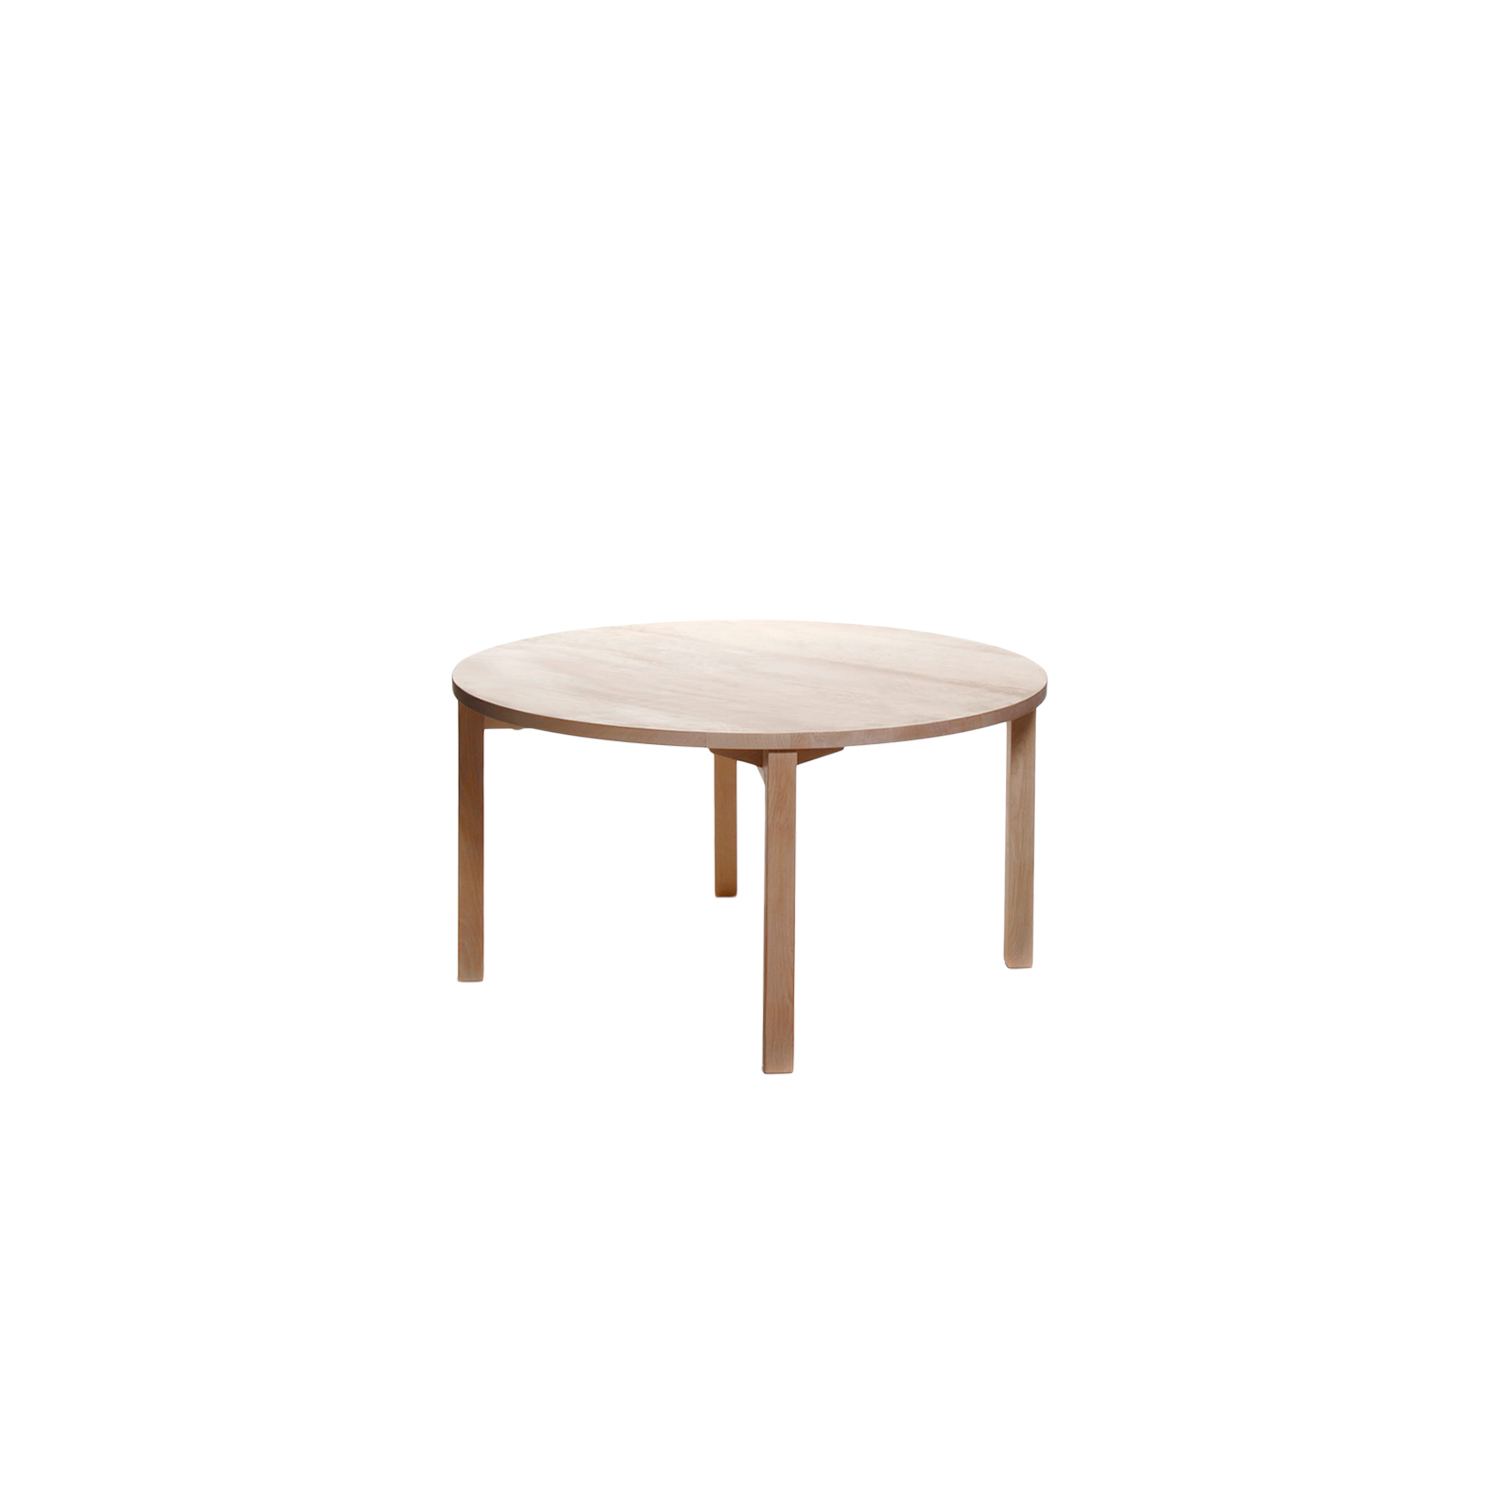 Periferia Round Dining Table - The round Periferia dining table is simple and minimalistic, letting the well-made surfaces and beautiful, unique wood material take the spotlight. The simple forms also make it a suitable solution to select with almost any chair.  This dining table is available in birch, ash, oak with an oiled finish, and can be ordered in three different sizes.    Matter of Stuff